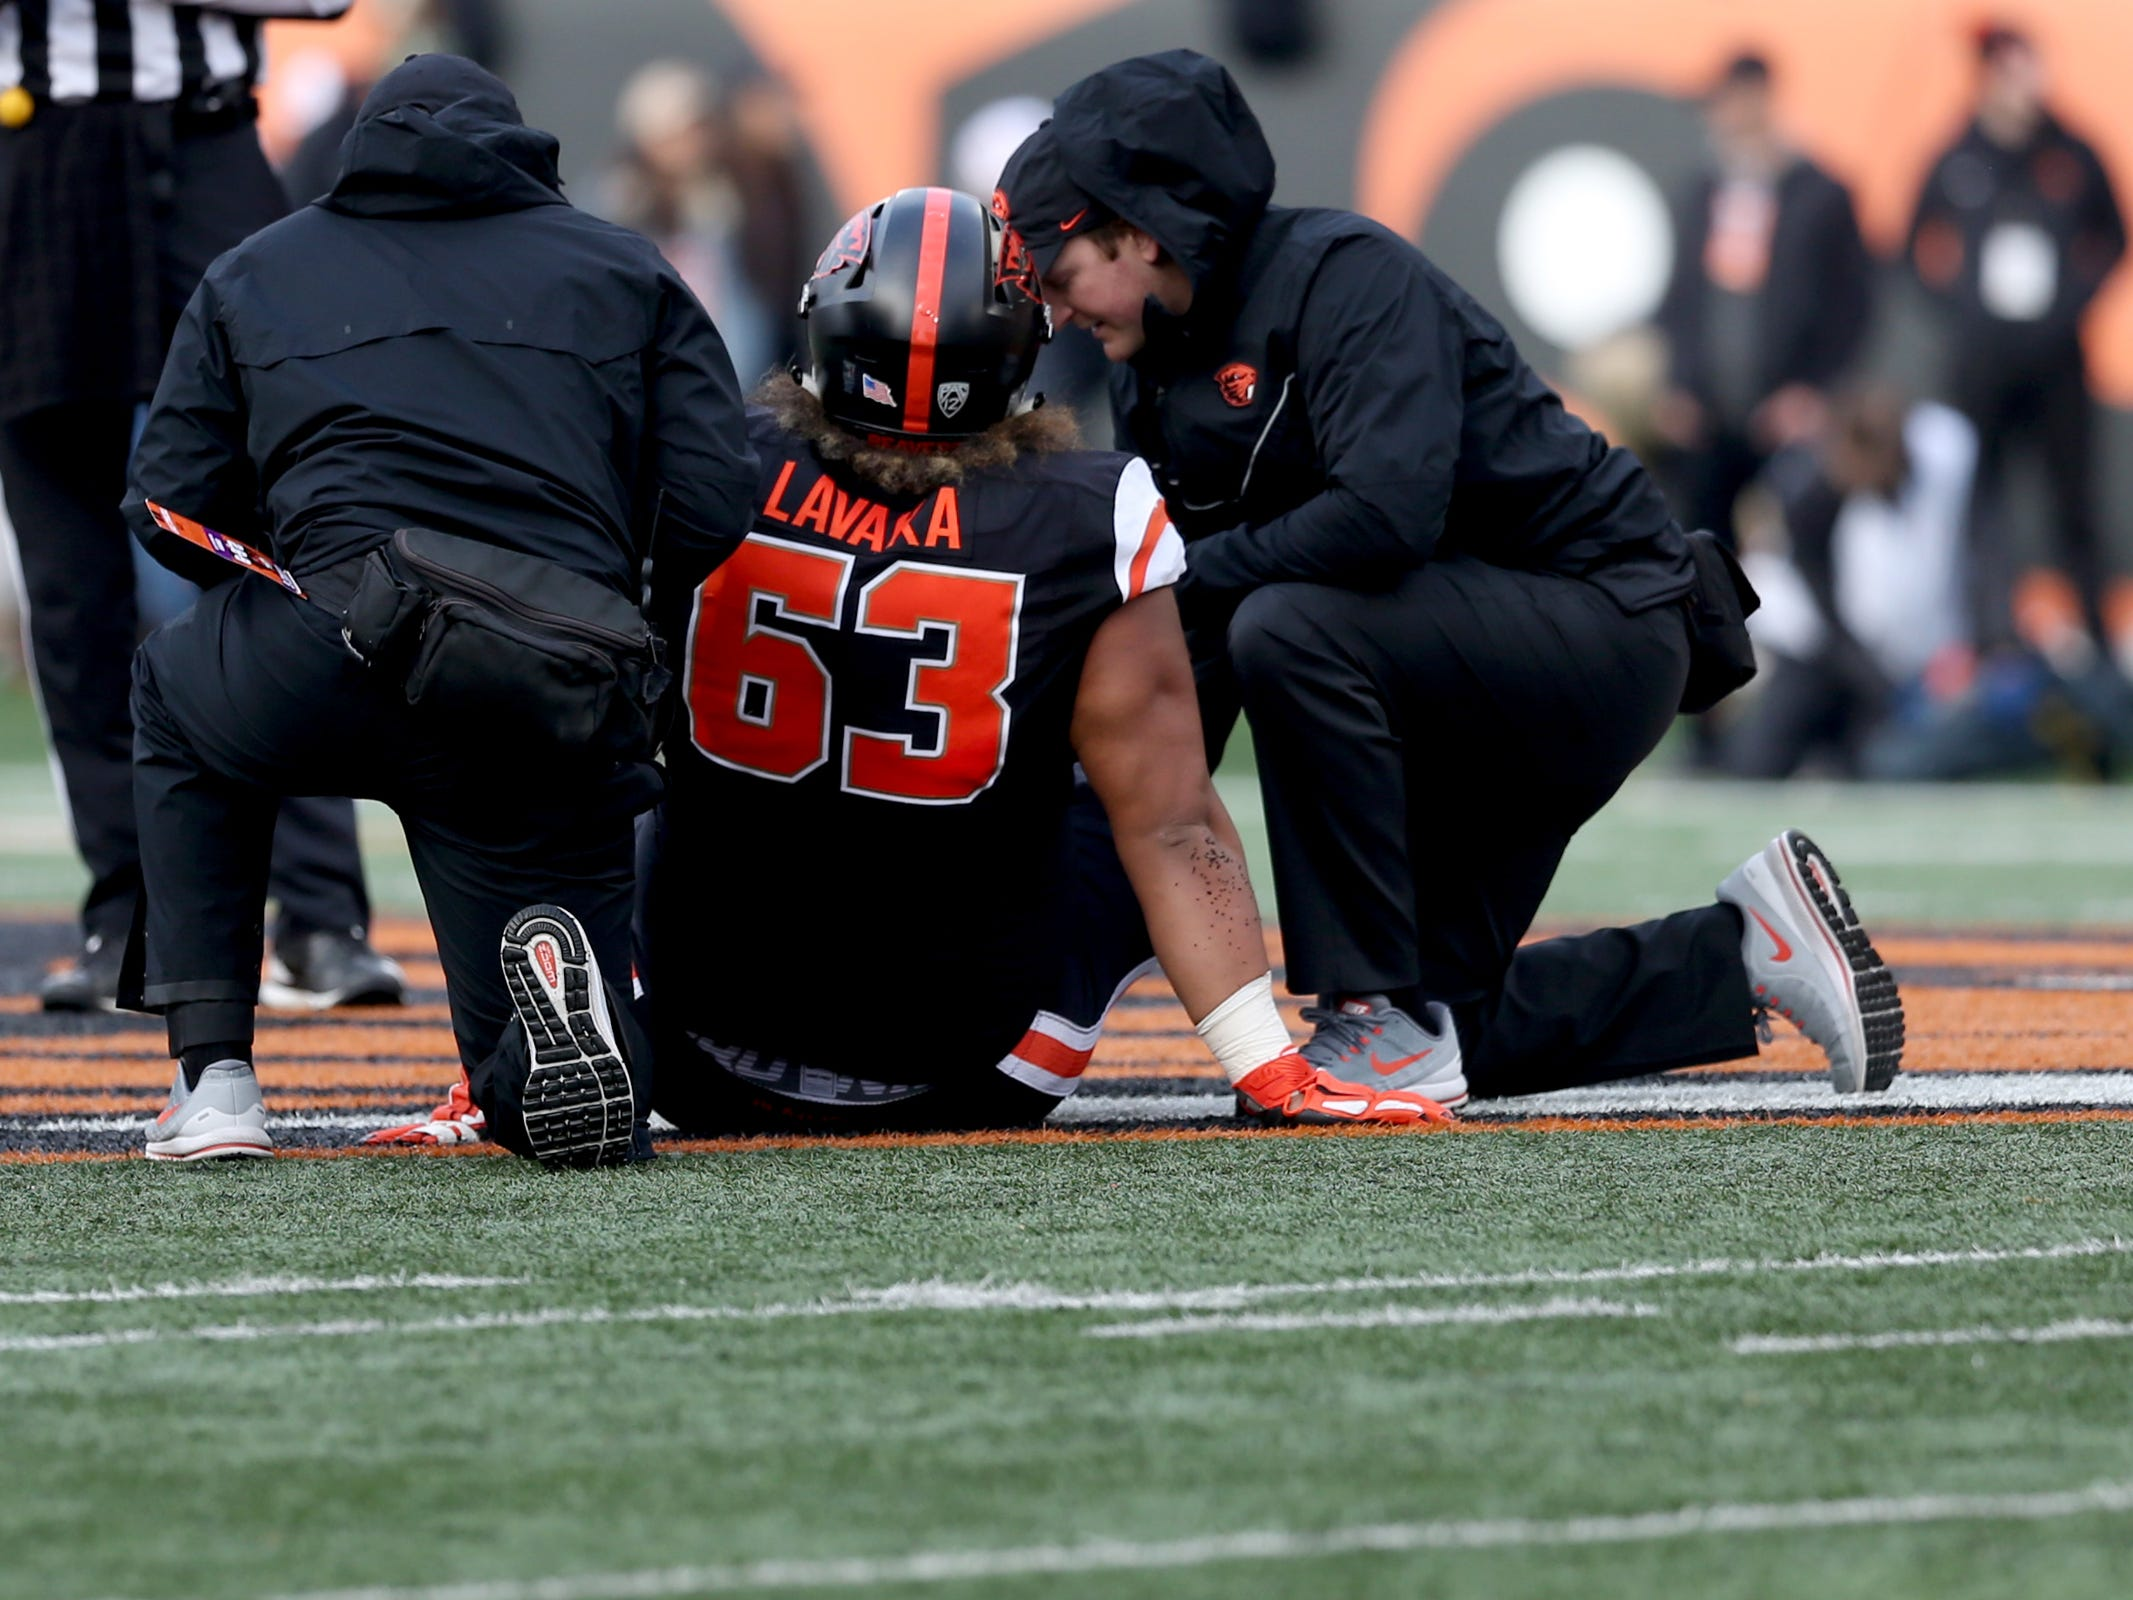 Oregon State's Gus Lavaka (63) is injured in the field in the Oregon vs. Oregon State Civil war football game at Oregon State University in Corvallis on Friday, Nov. 23, 2018.